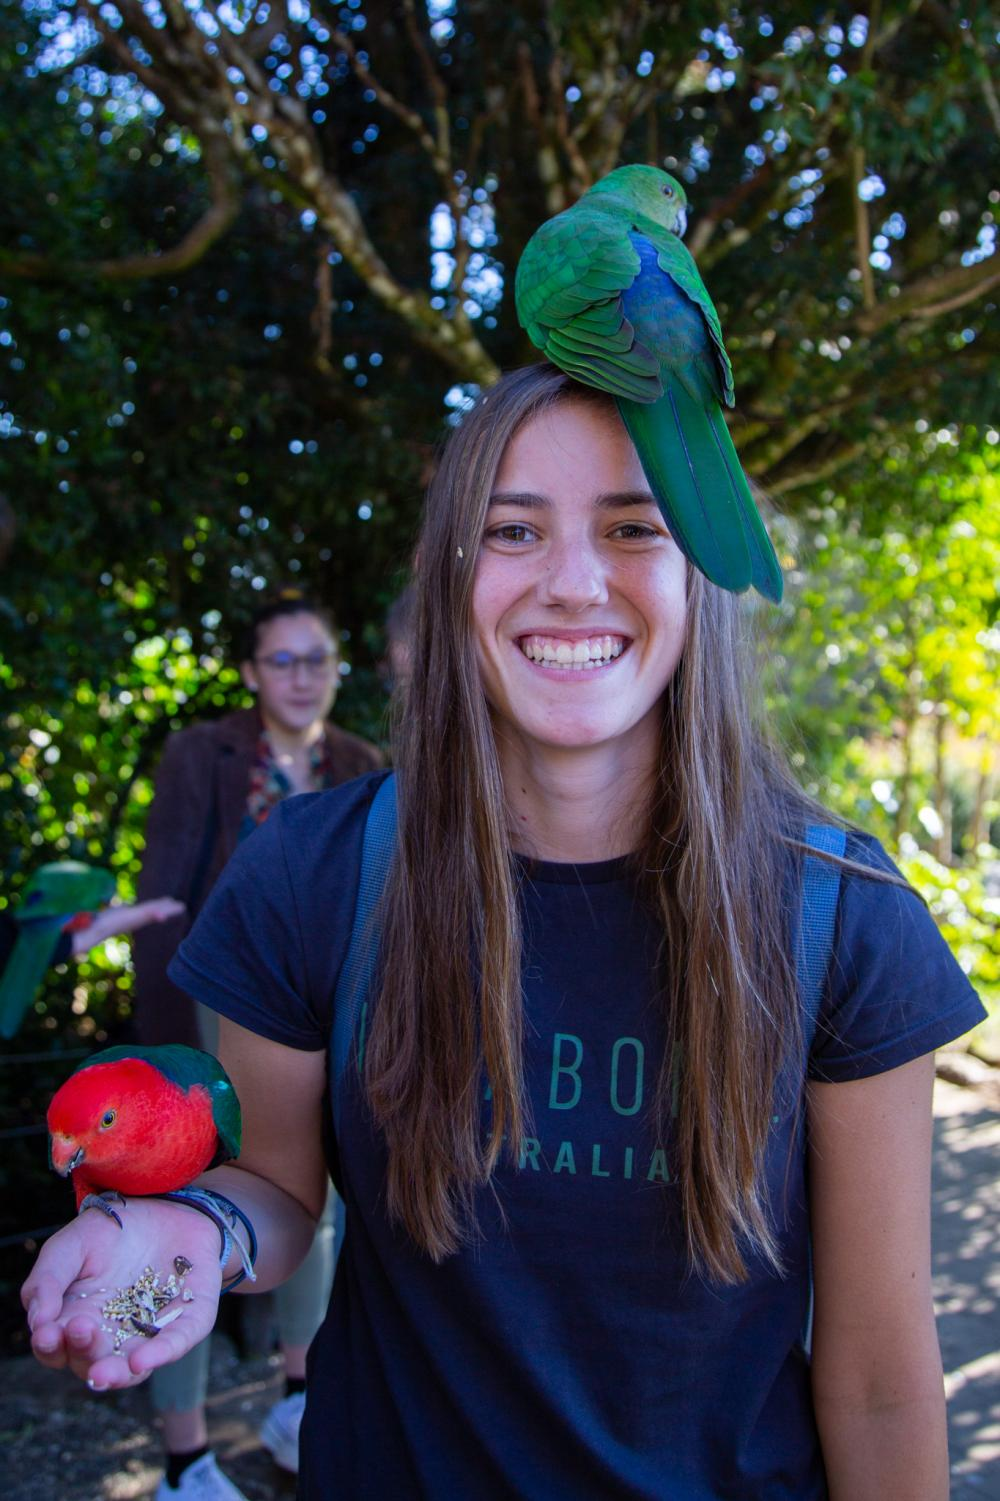 FEEDING+TIME%3A+Junior+Hannah+Wheeler+smiles+while+feeding+parrots+on+the+Gold+Coast%2C+Australia+on+July+18.+%E2%80%9CYou+learn+about+Darwin%E2%80%99s+theory+of+evolution+with+beaks+and+birds%2C+we+got+to+see+that+firsthand+with+the+parrots%2C%E2%80%9D+said+Hinz.